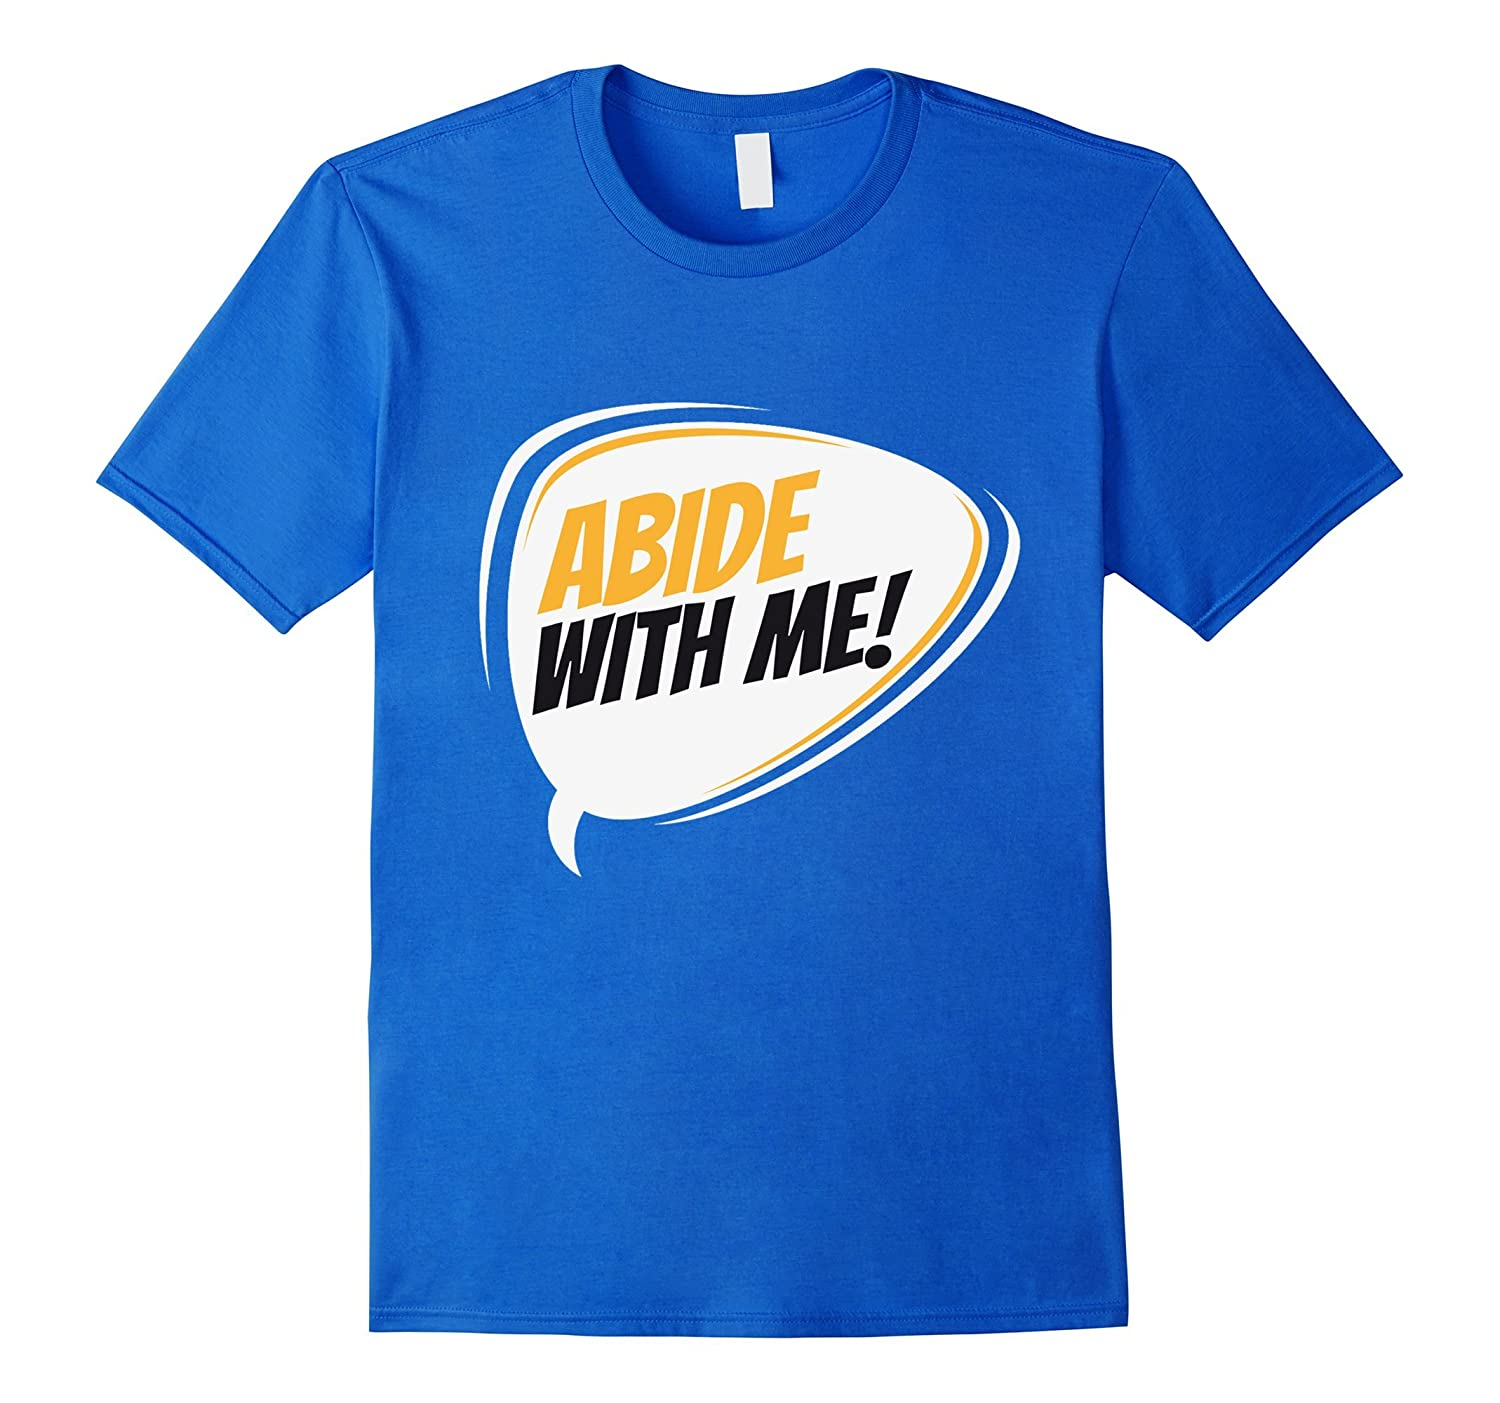 Abide with me, Abide Dude T-shirt